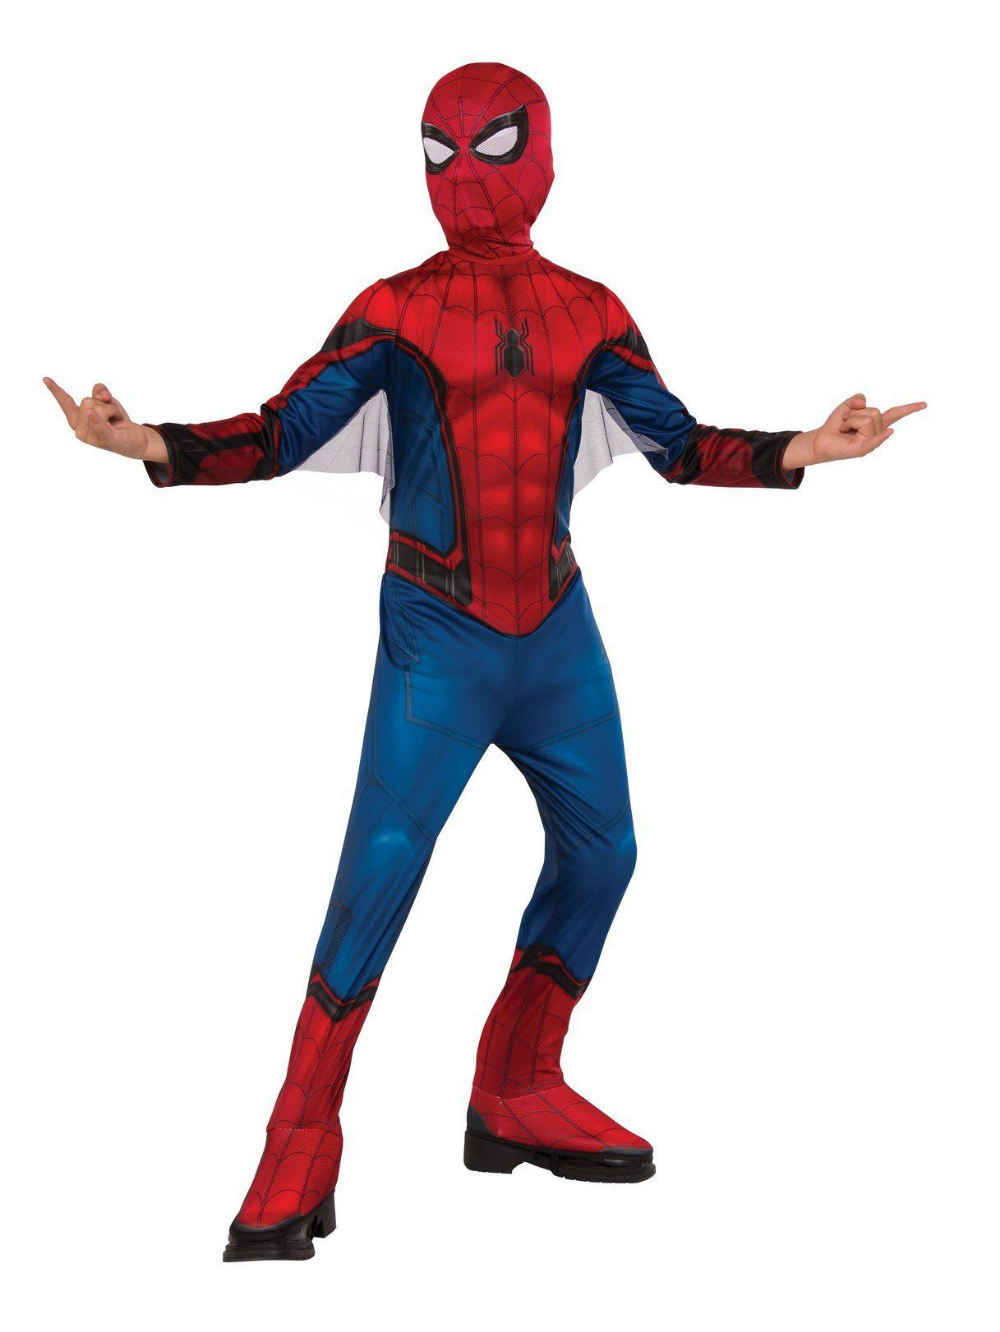 Boys Spider Man Far From Home Spider Man Red Blu Costume Partybell Com Spiderman Costume Childrens Halloween Costumes Boy Costumes